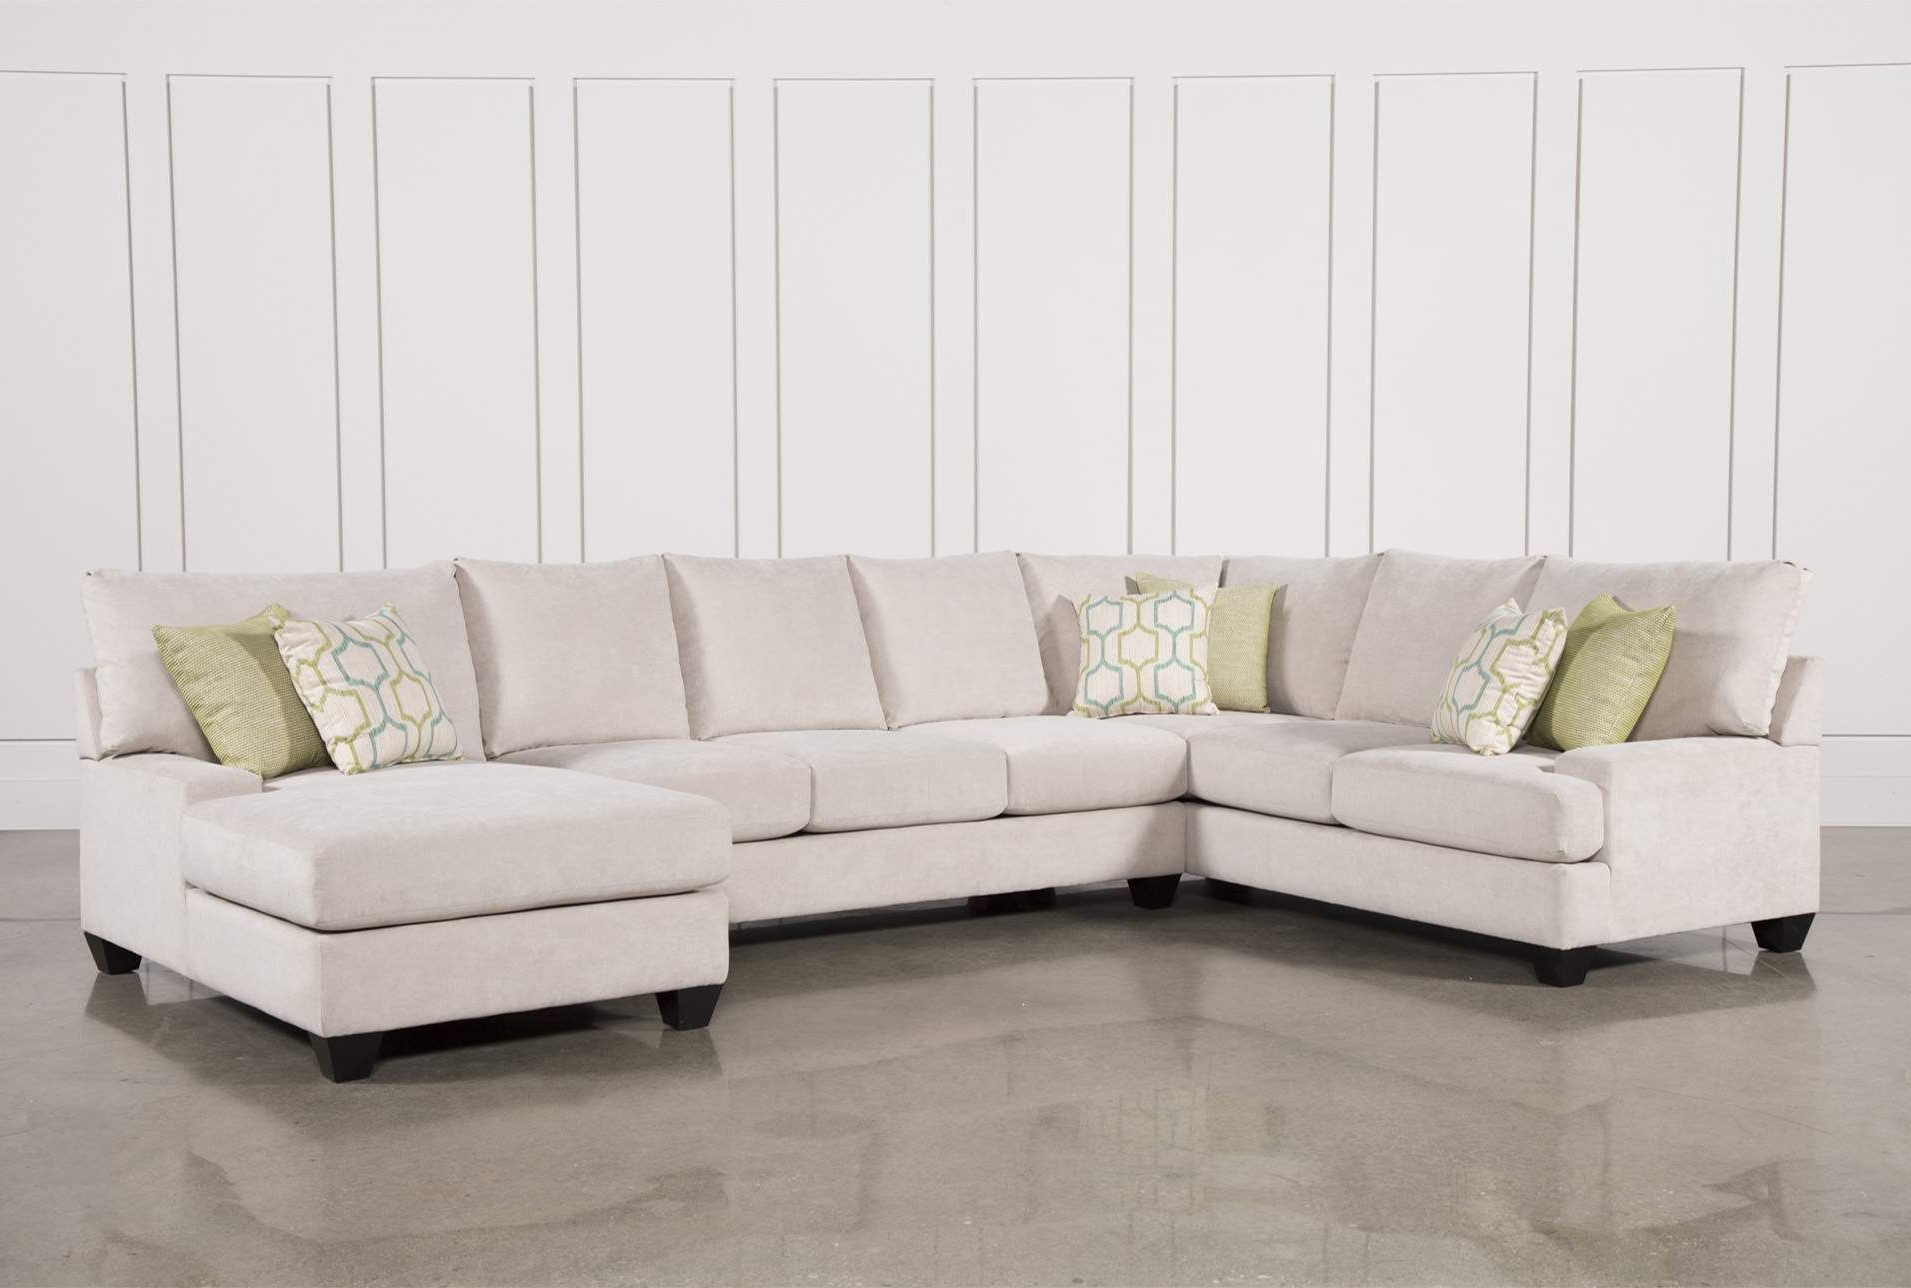 Harper Foam 3 Piece Sectional W/raf Chaise For Most Recently Released Meyer 3 Piece Sectionals With Laf Chaise (Gallery 17 of 20)